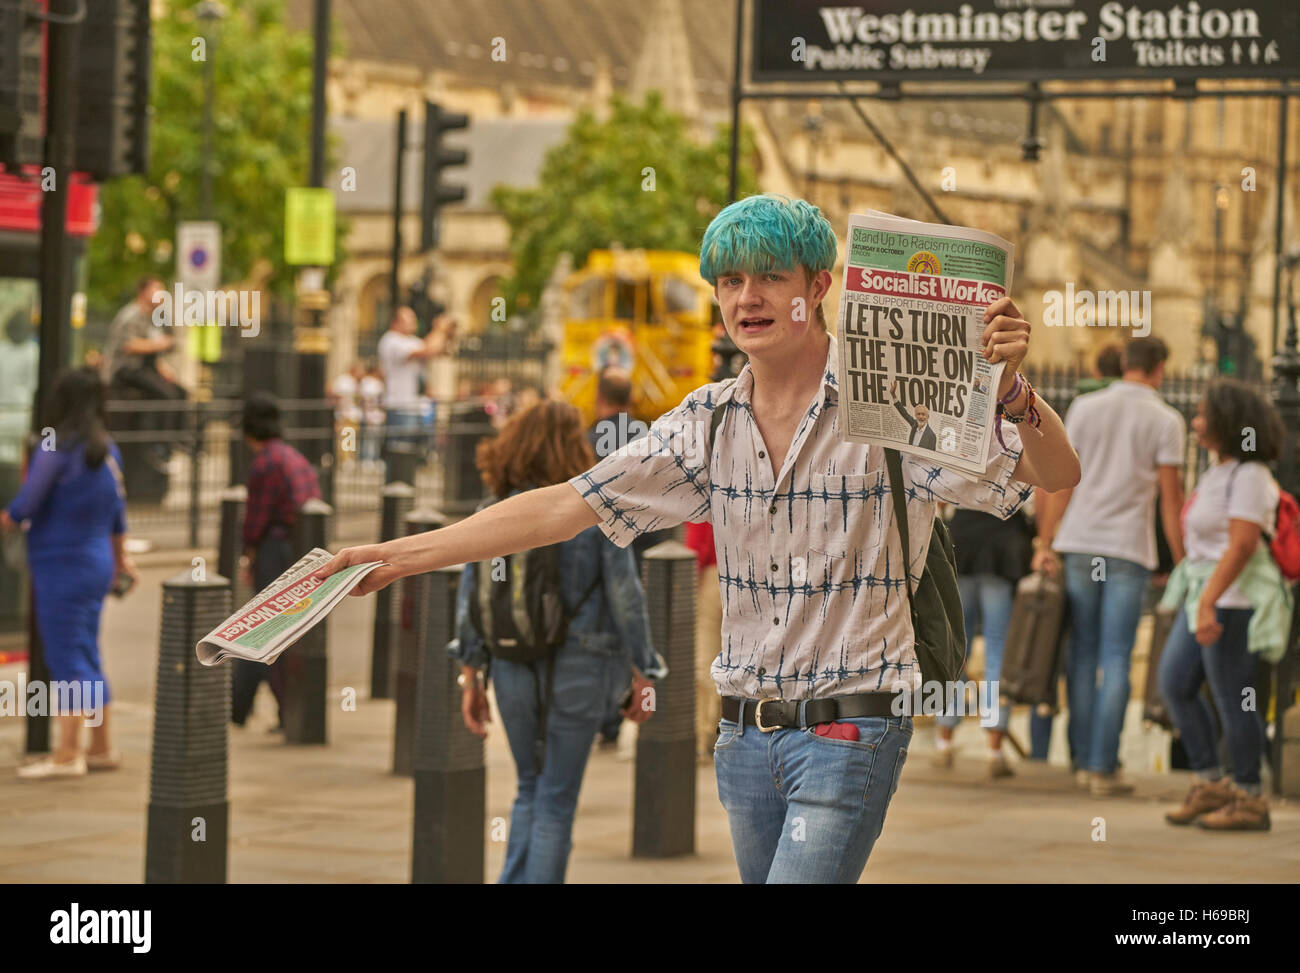 socialist worker seller.  Young socialist.   Political youth.  left wing activist. - Stock Image